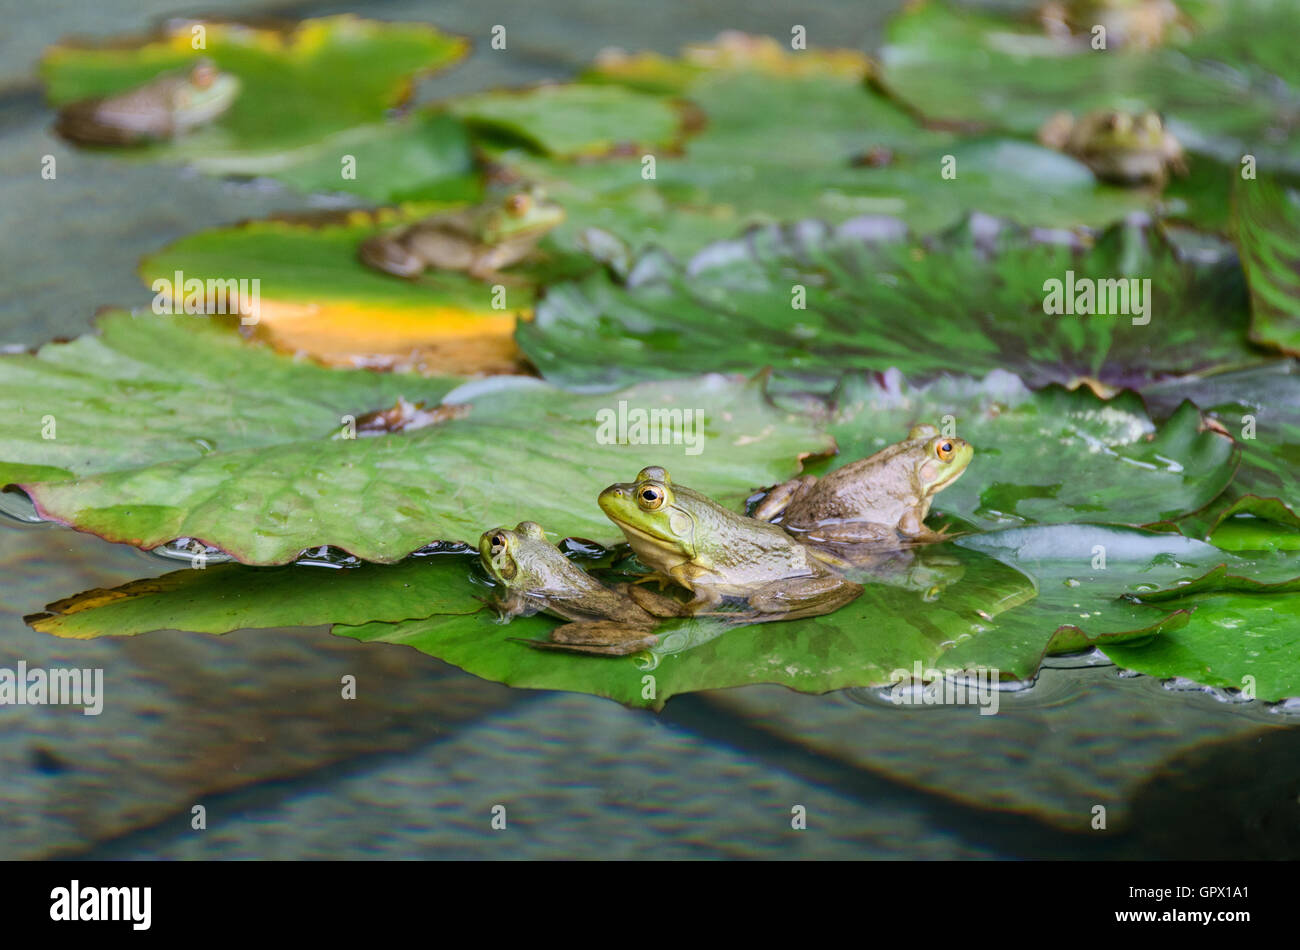 Six Green Frogs Rana clamitans melanota on lily pads in a garden